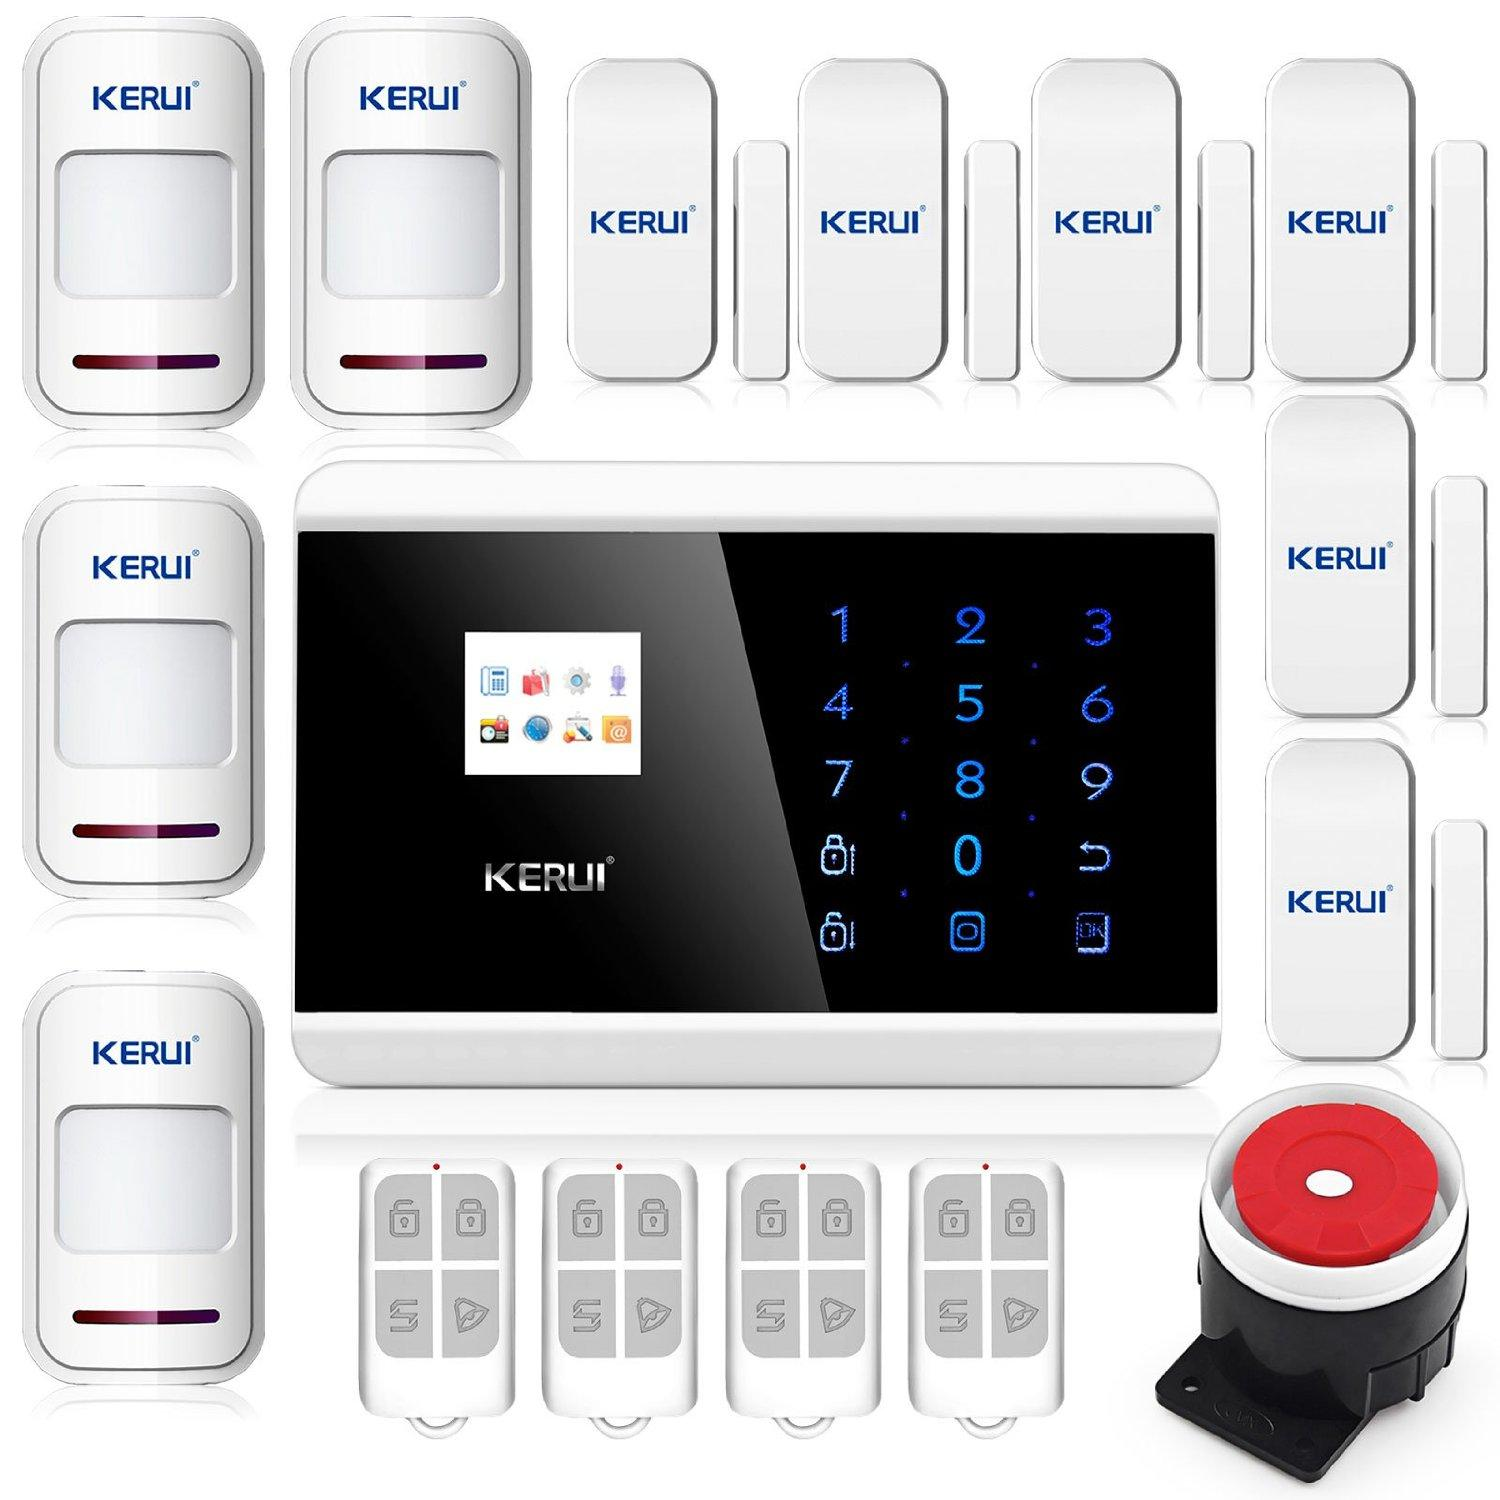 2016 New KERUI Wireless Touch Keypad TFT Color Display Gsm Pstn Home Security System Alarm Kits Siren for Smart Android App Kr-8218g